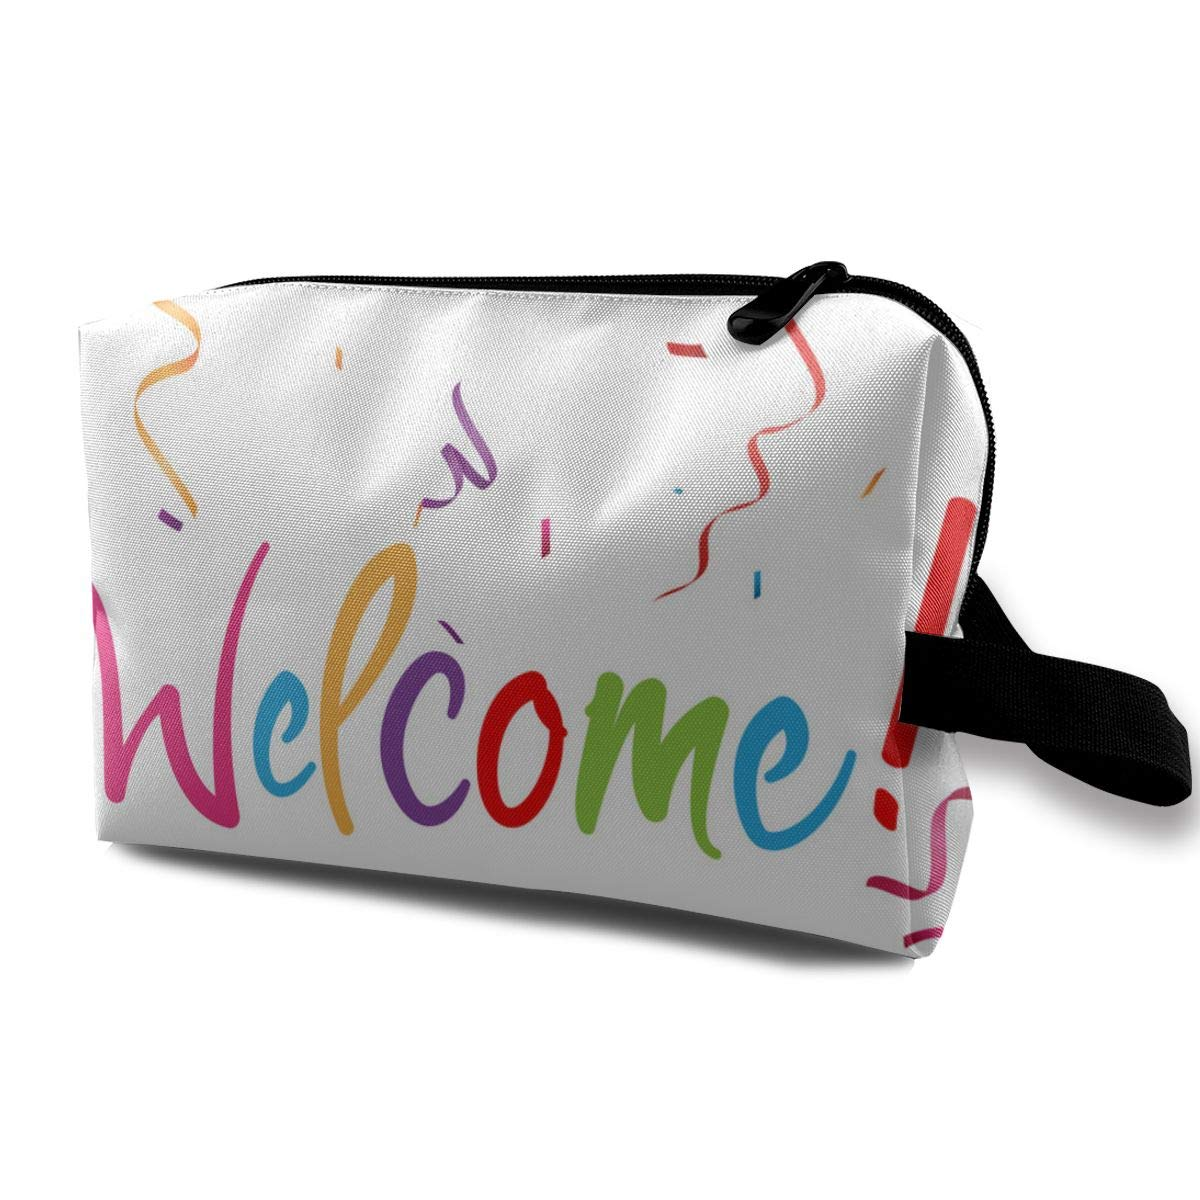 Lofout Welcome Sign with Confetti Cosmetic Bags Small Makeup Clutch Pouch Cosmetic and Toiletries Organizer Bag Women Makeup Travel Storage 10 X 6.3 X 5 Inch